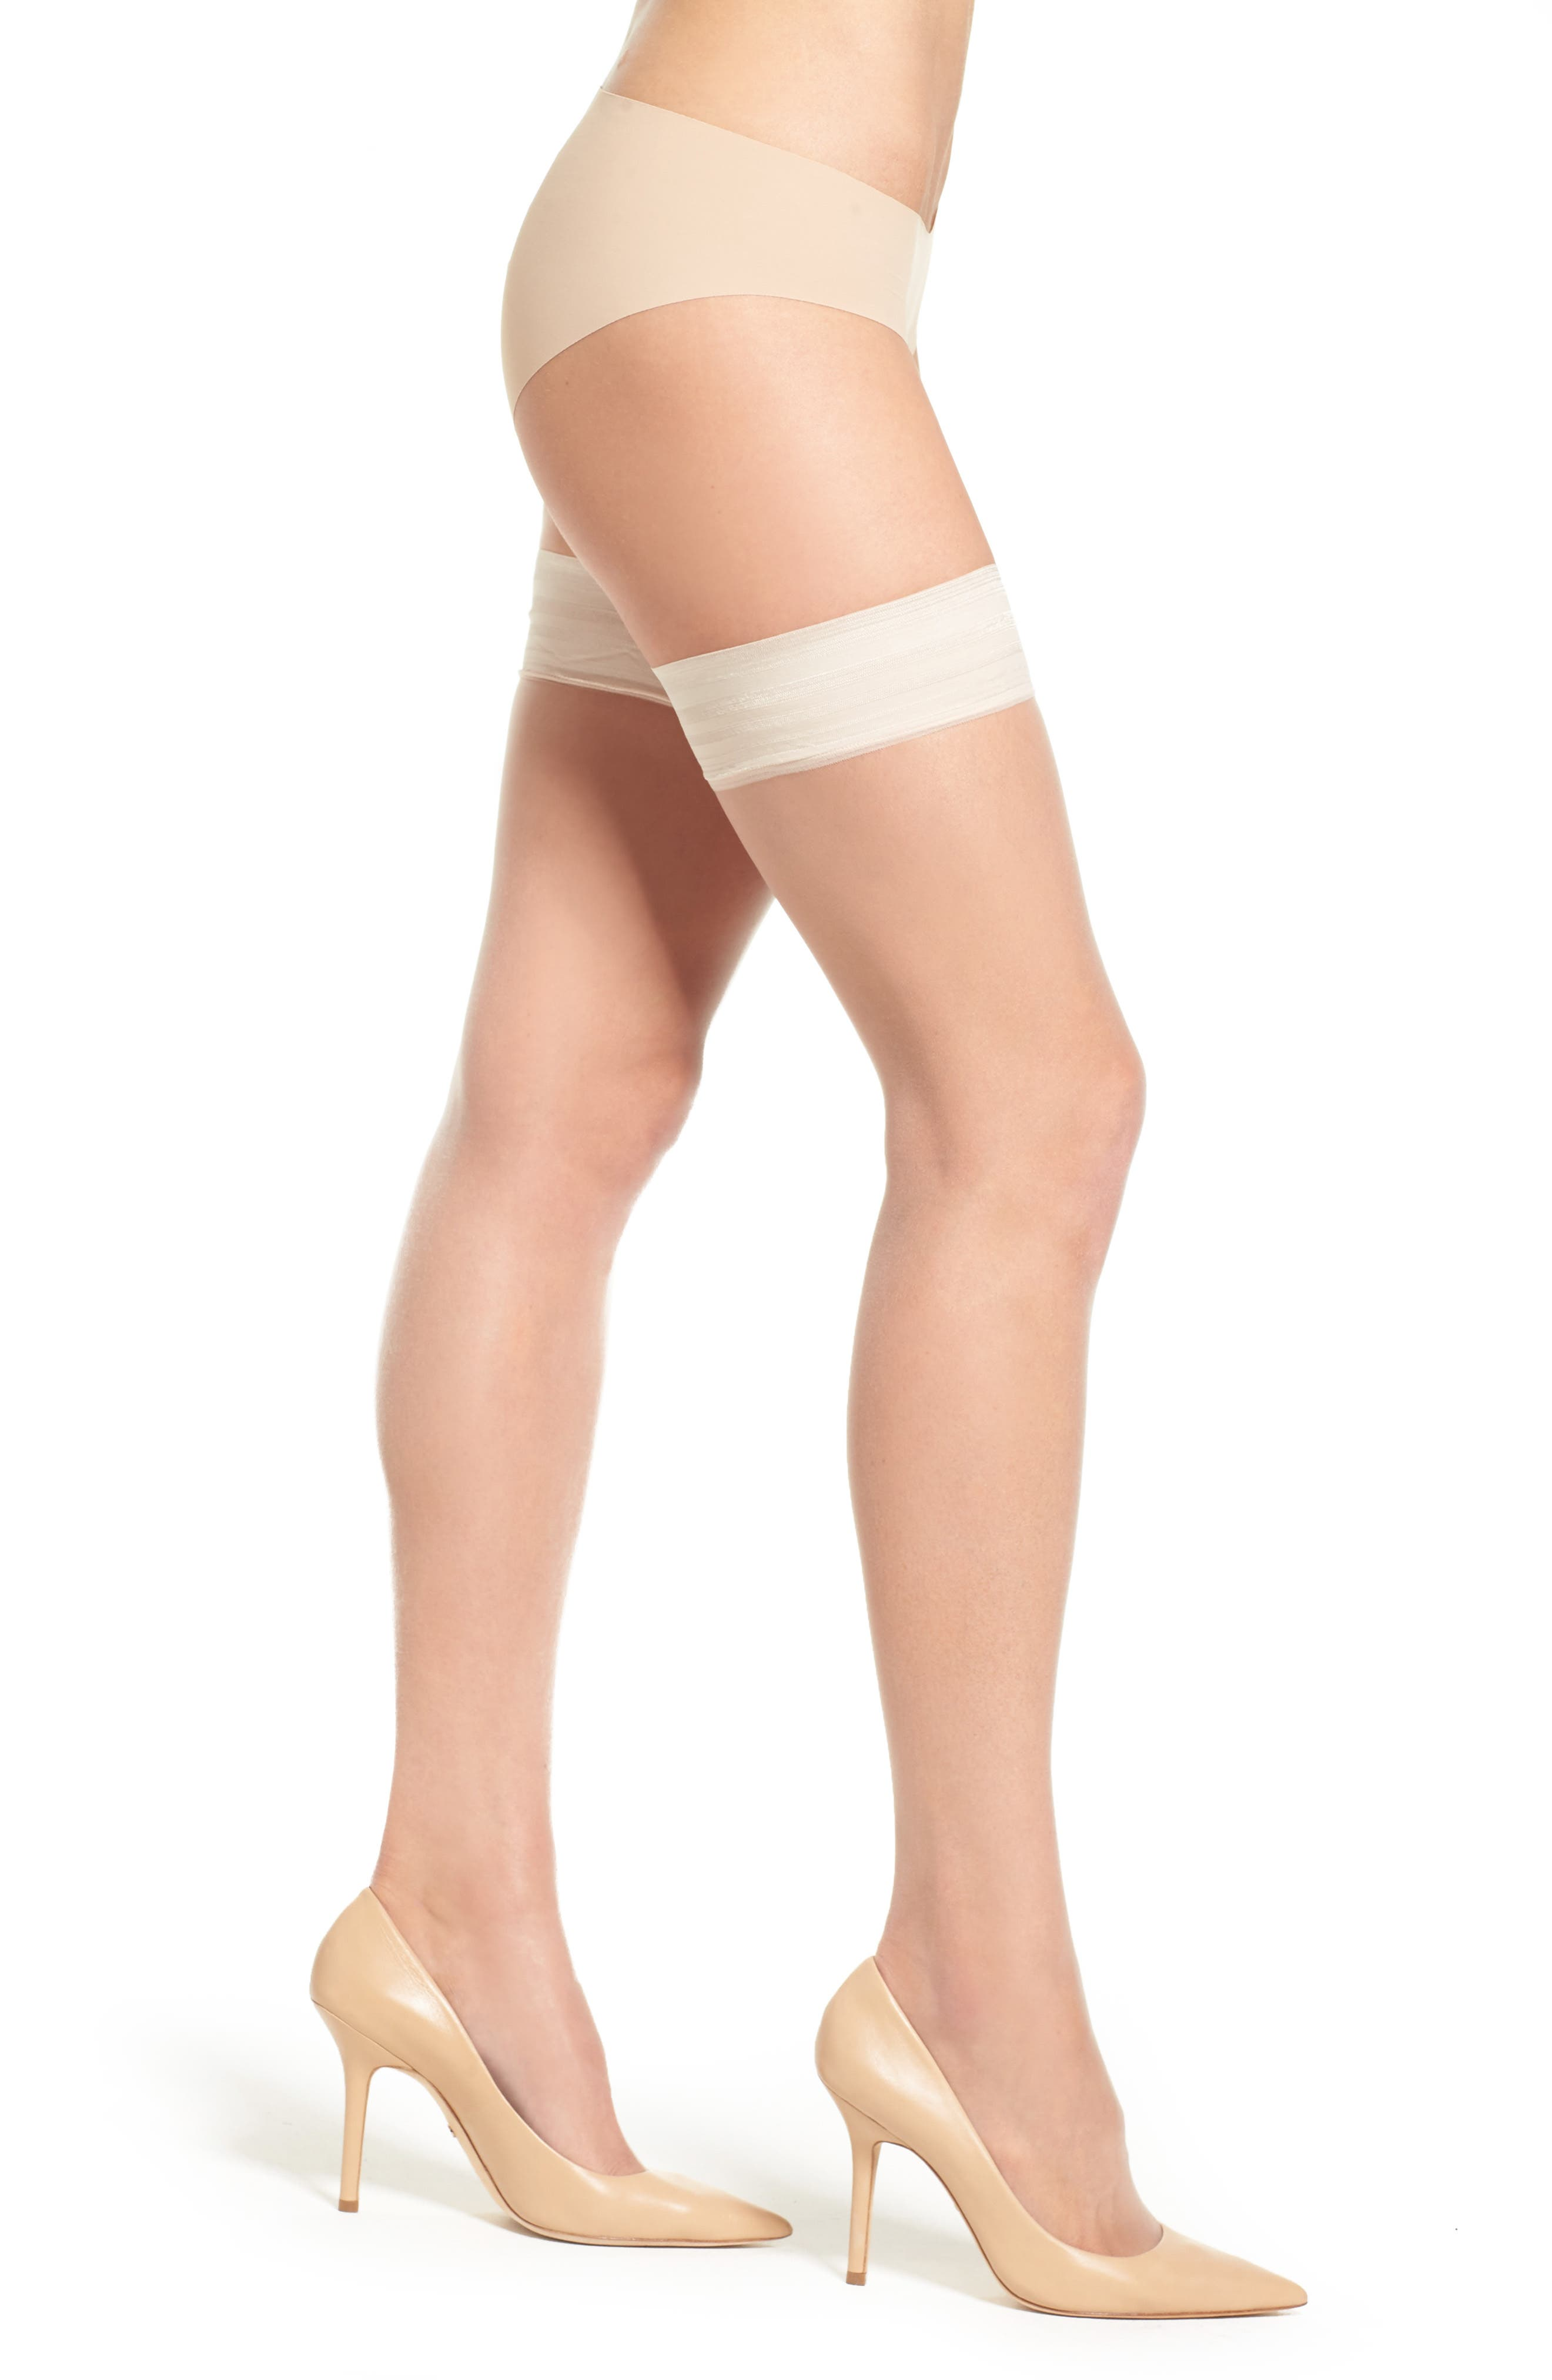 Donna Karan Beyond The Nudes Stay-Up Stockings,                         Main,                         color, A01